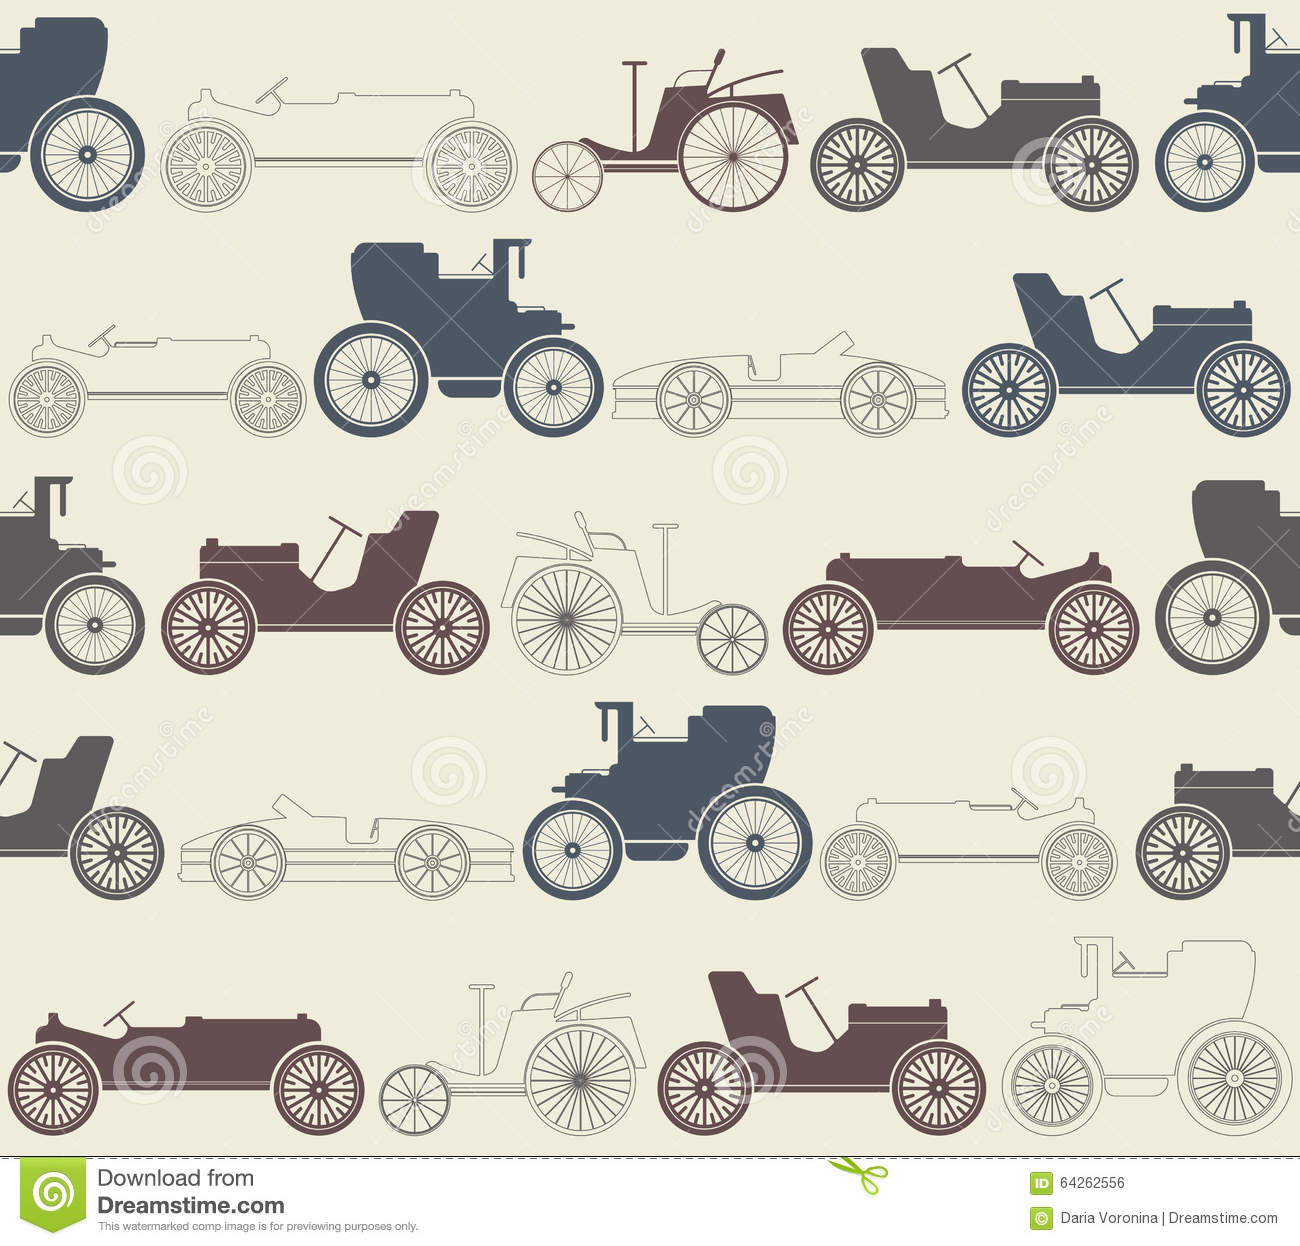 automobile design essay The international journal of vehicle design is the journal of vehicle engineering, automotive technology and components published by inderscience publishers.